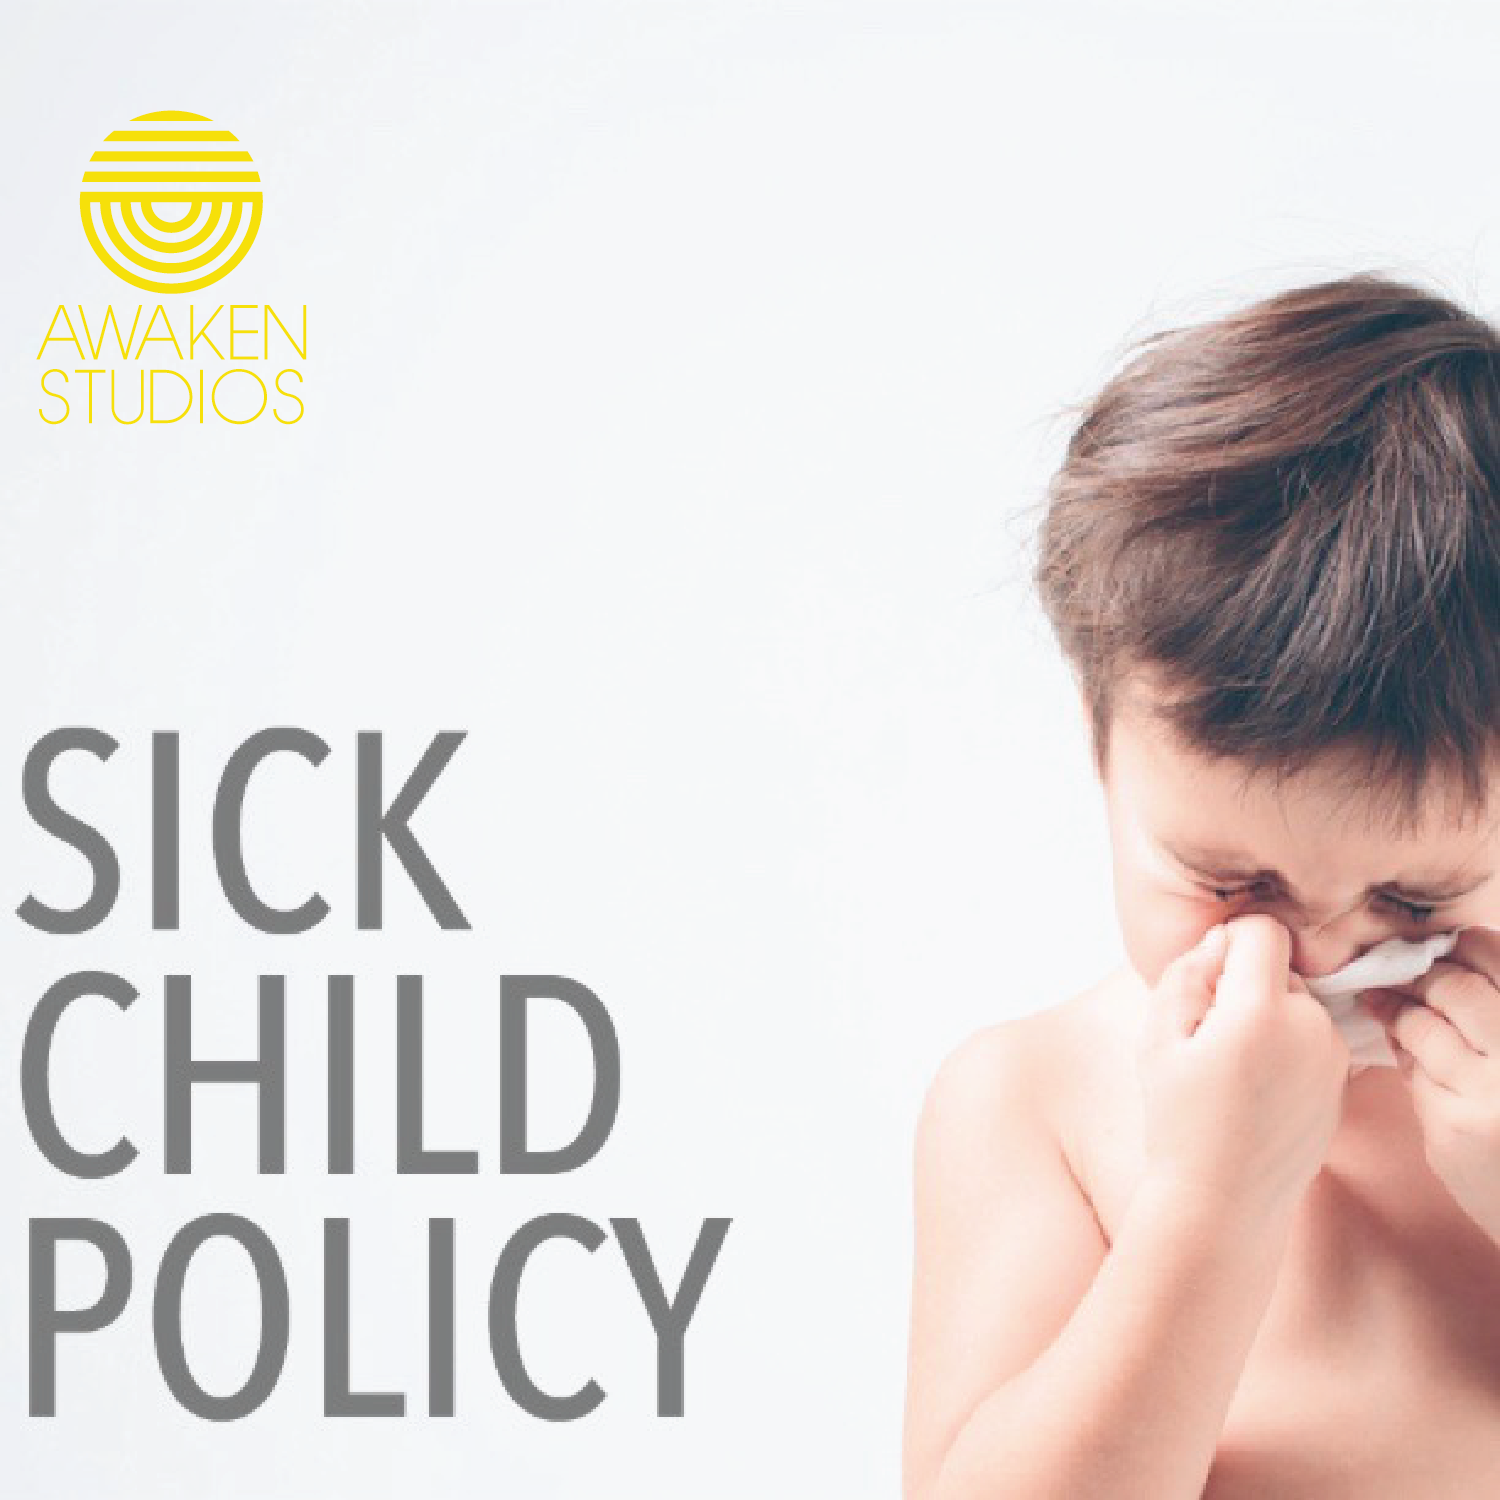 sickchildpolicy-01.png